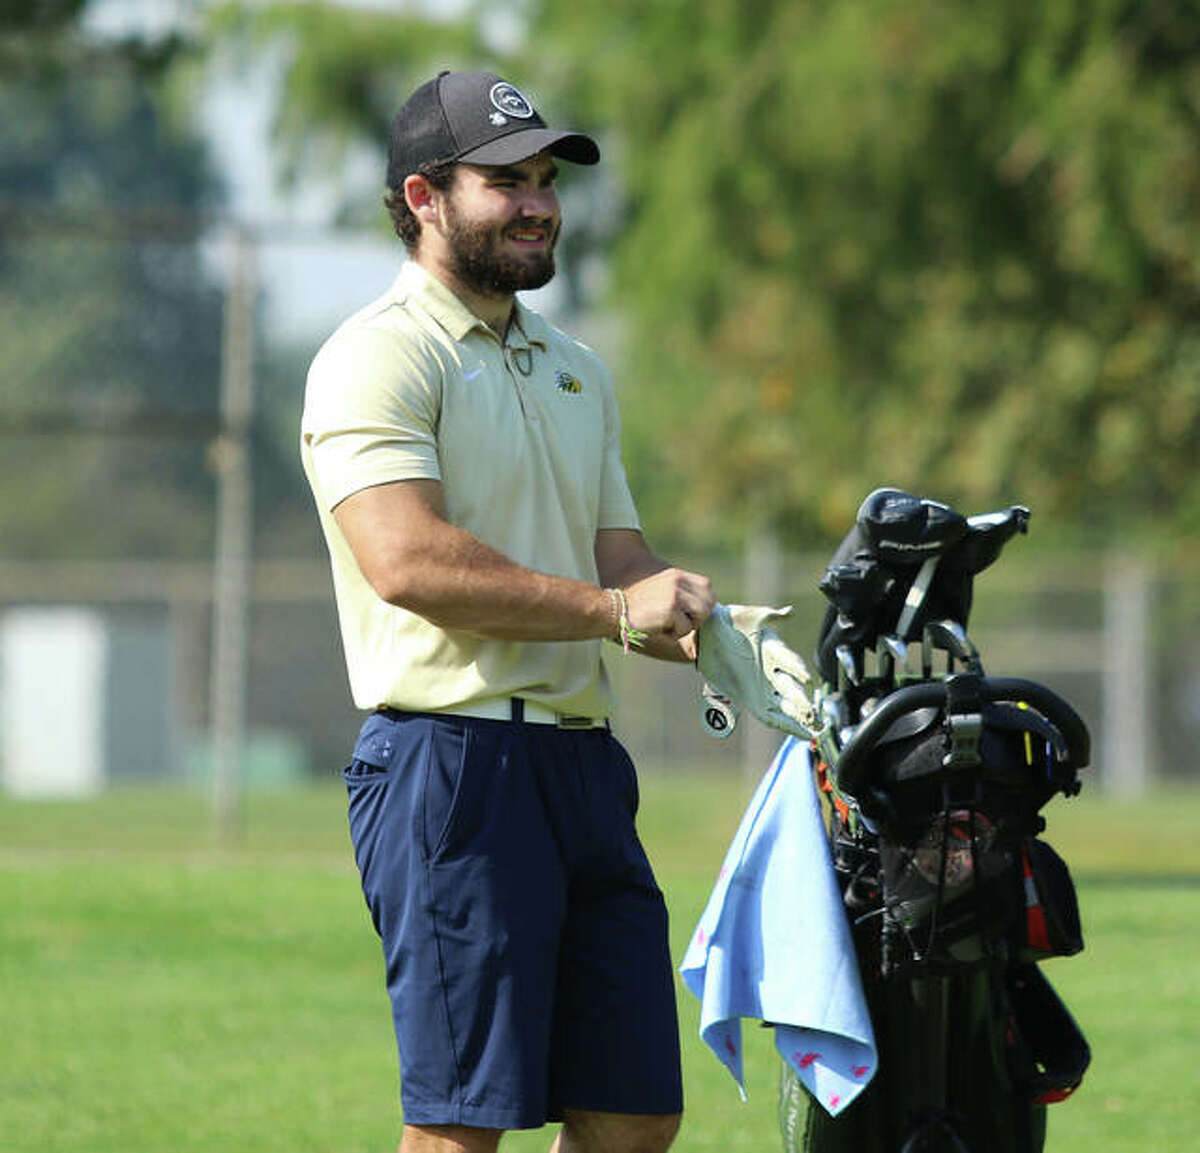 Metro-East Lutheran's Antonio Ybarra waits to take a shot on the 10th fairway at the Class 1A regional on Wednesday at Spencer T. Olin in Alton.